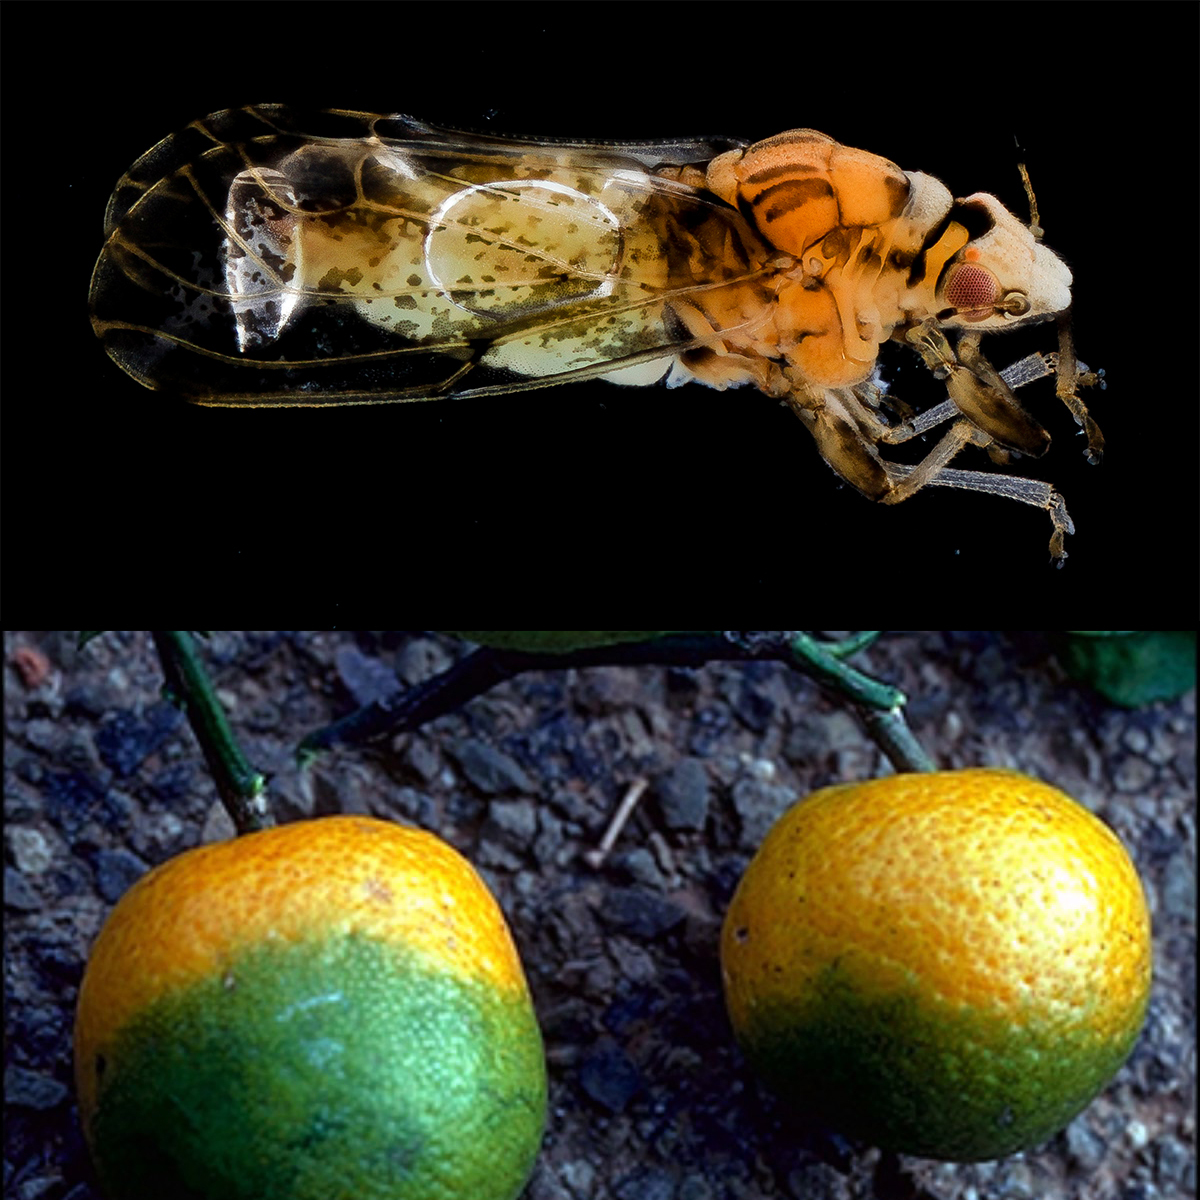 Citrus greening and infected fruit